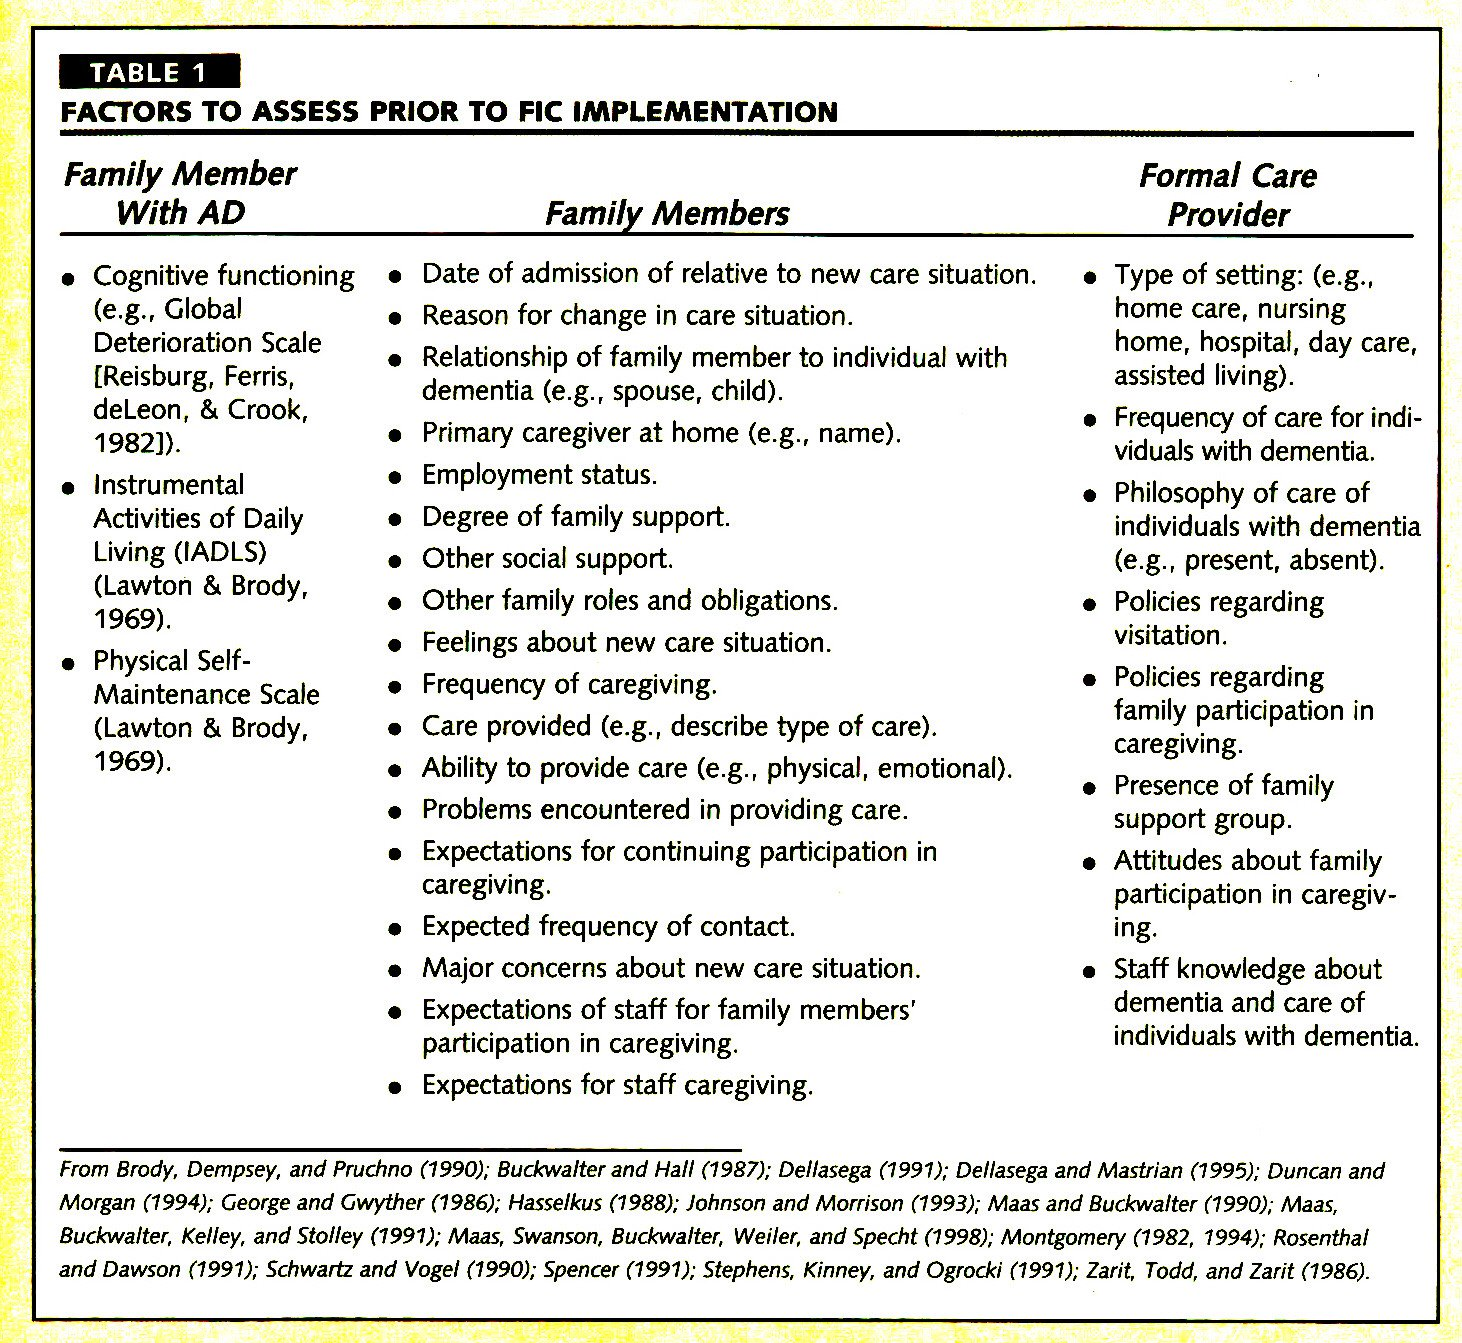 TABLE 1FACTORS TO ASSESS PRIOR TO FIC IMPLEMENTATION